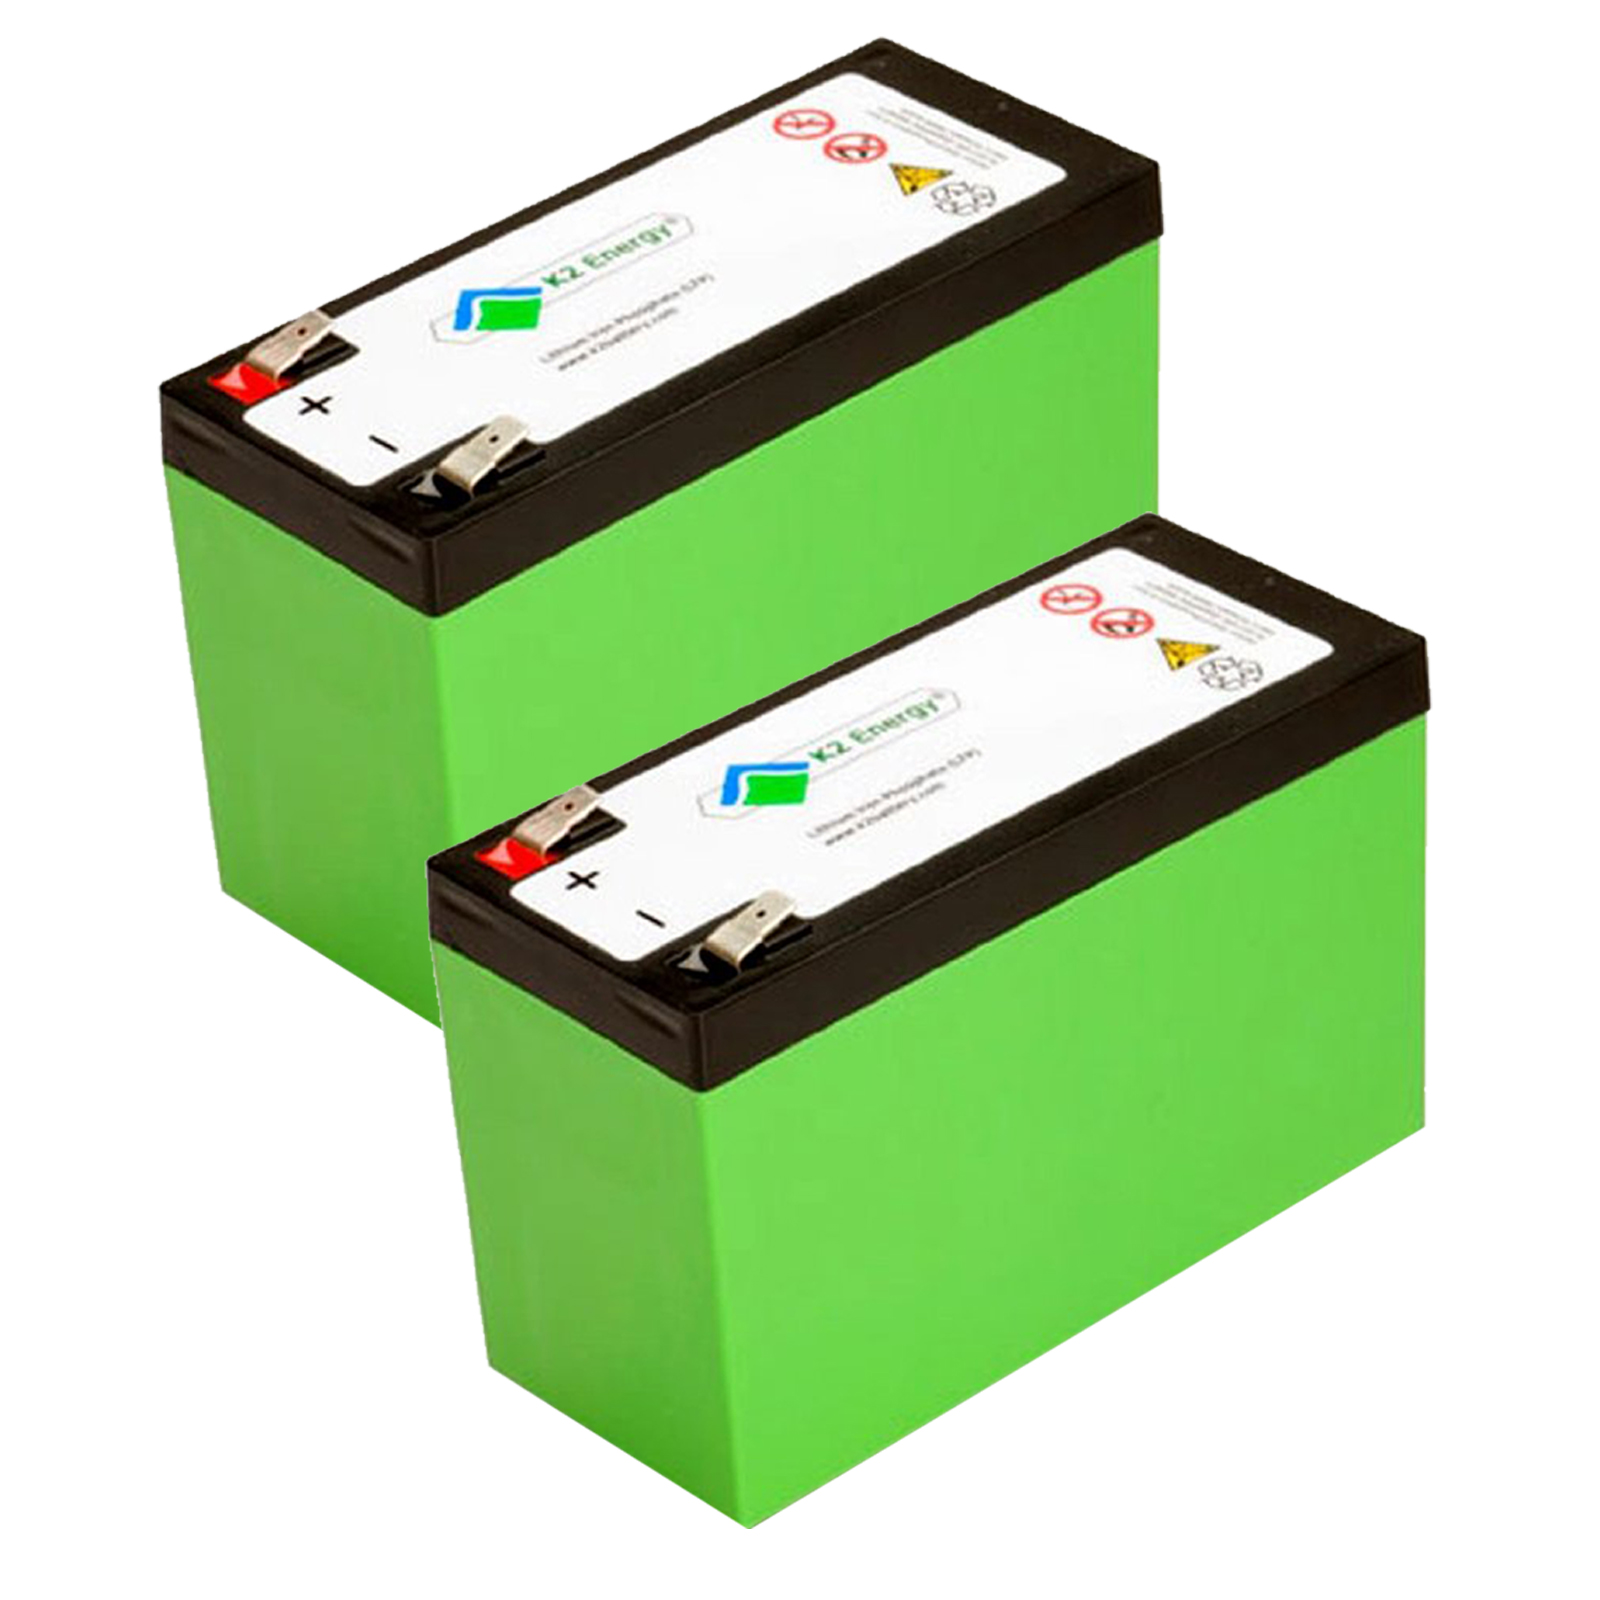 How Man Batteries At Ah For Electric Car